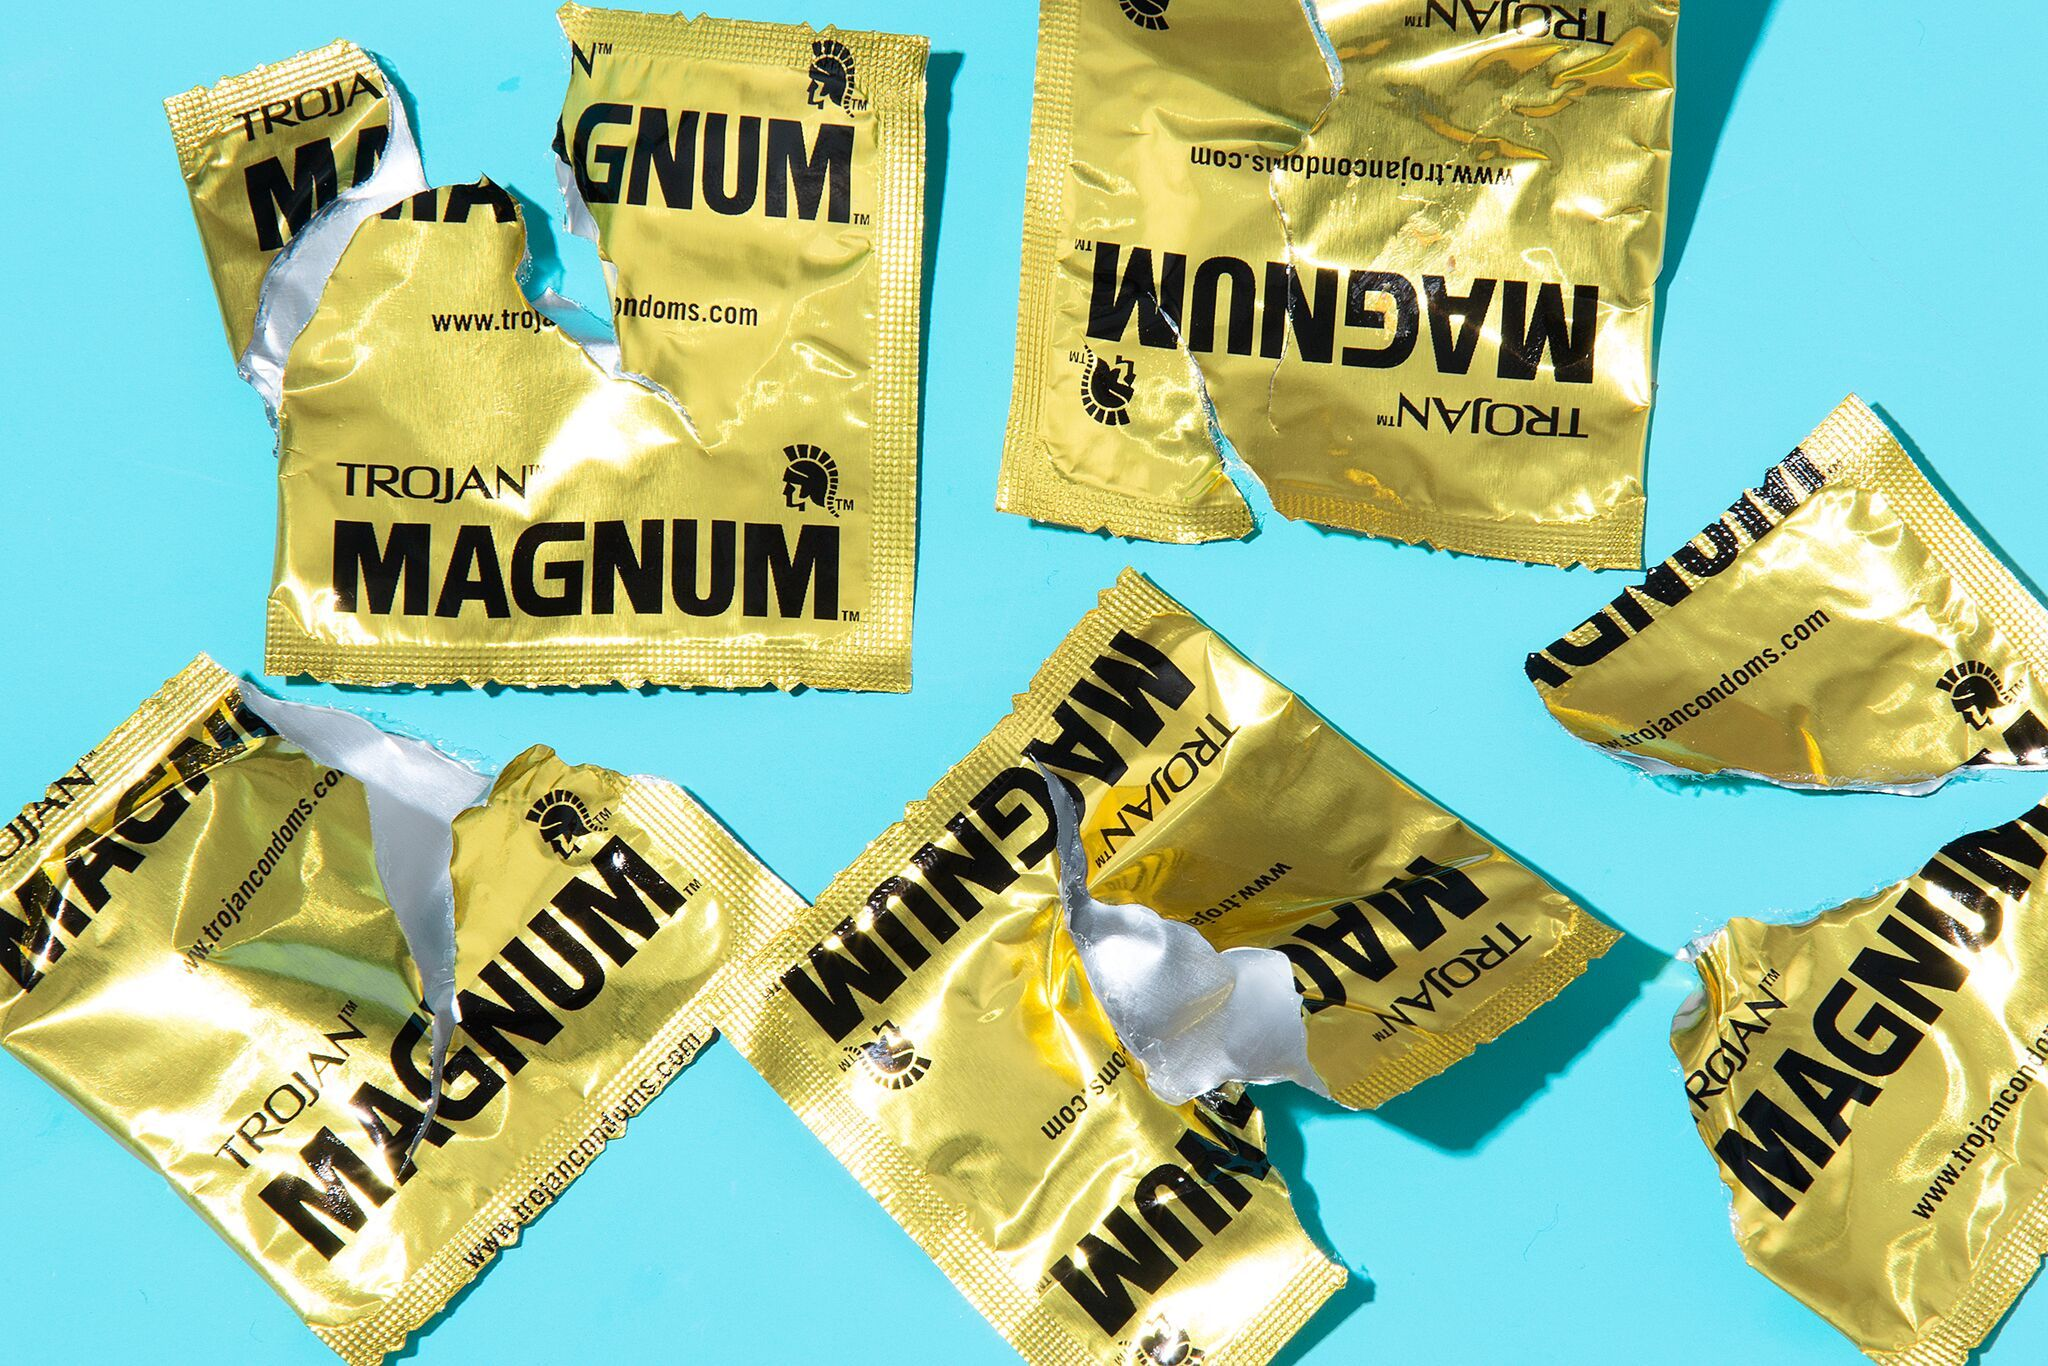 How to Get Free Condoms images